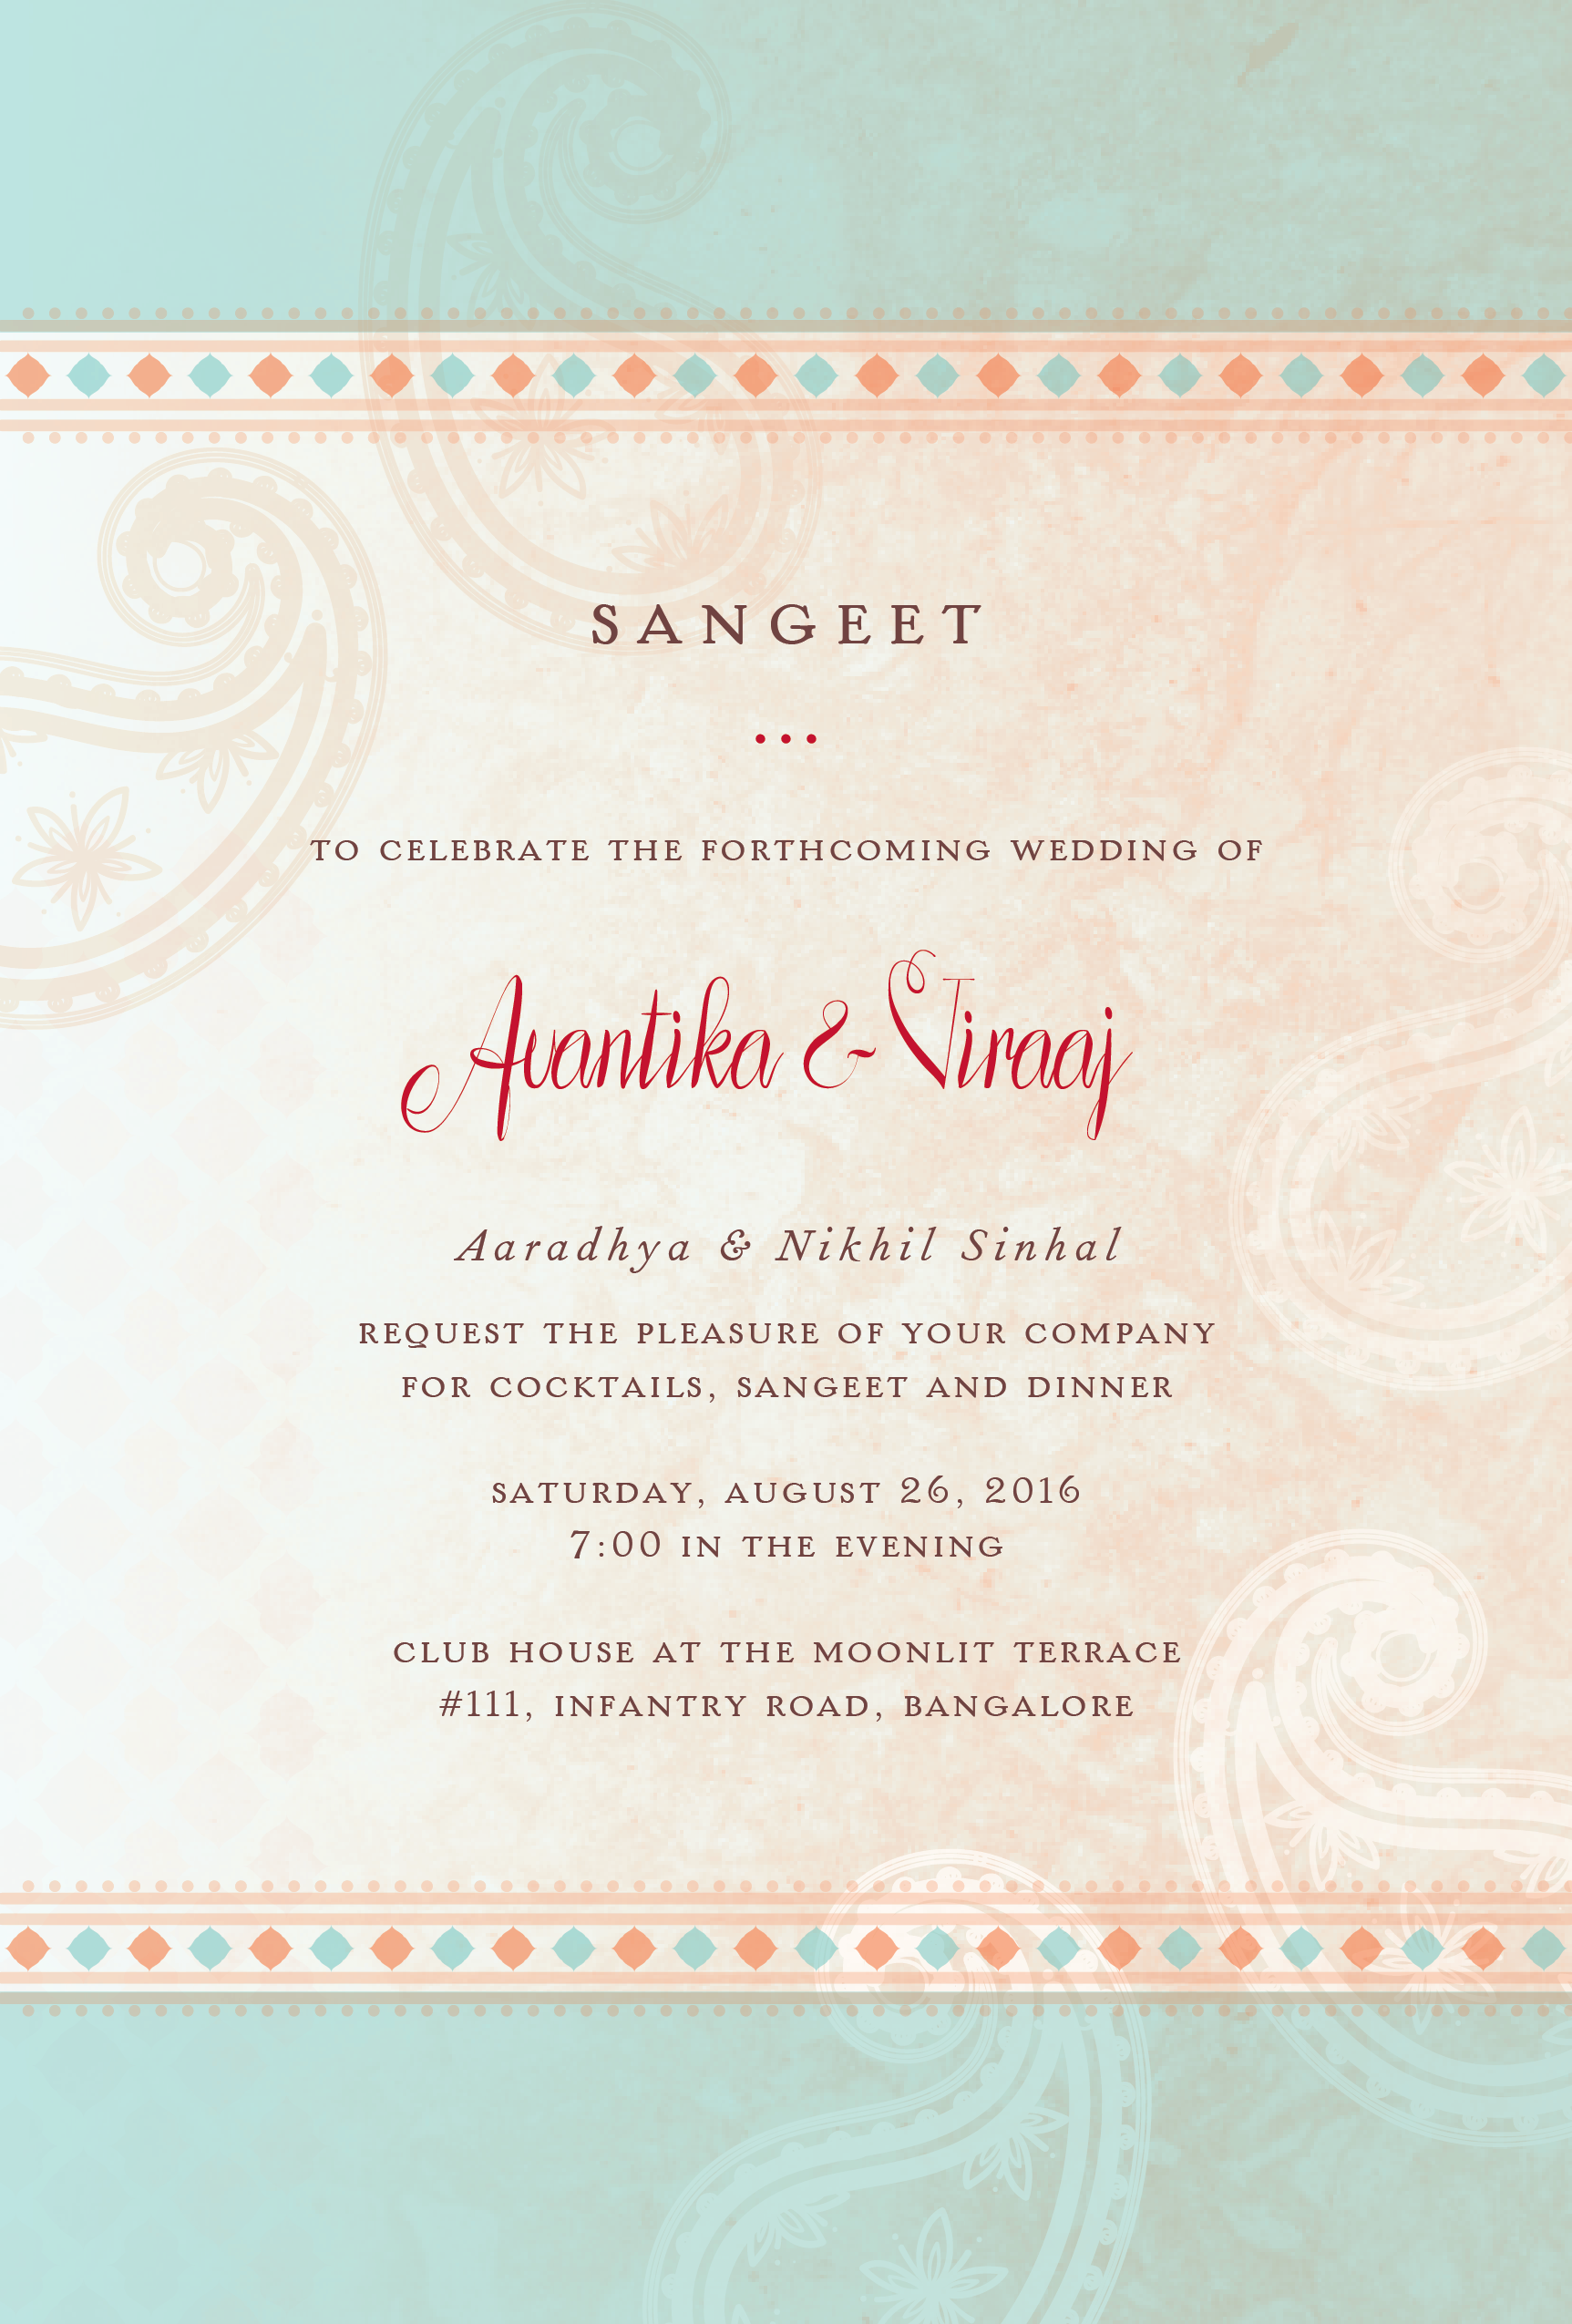 Exclusive Wedding Invitation Cards, Sangeet Cards, Wedding Reception ...